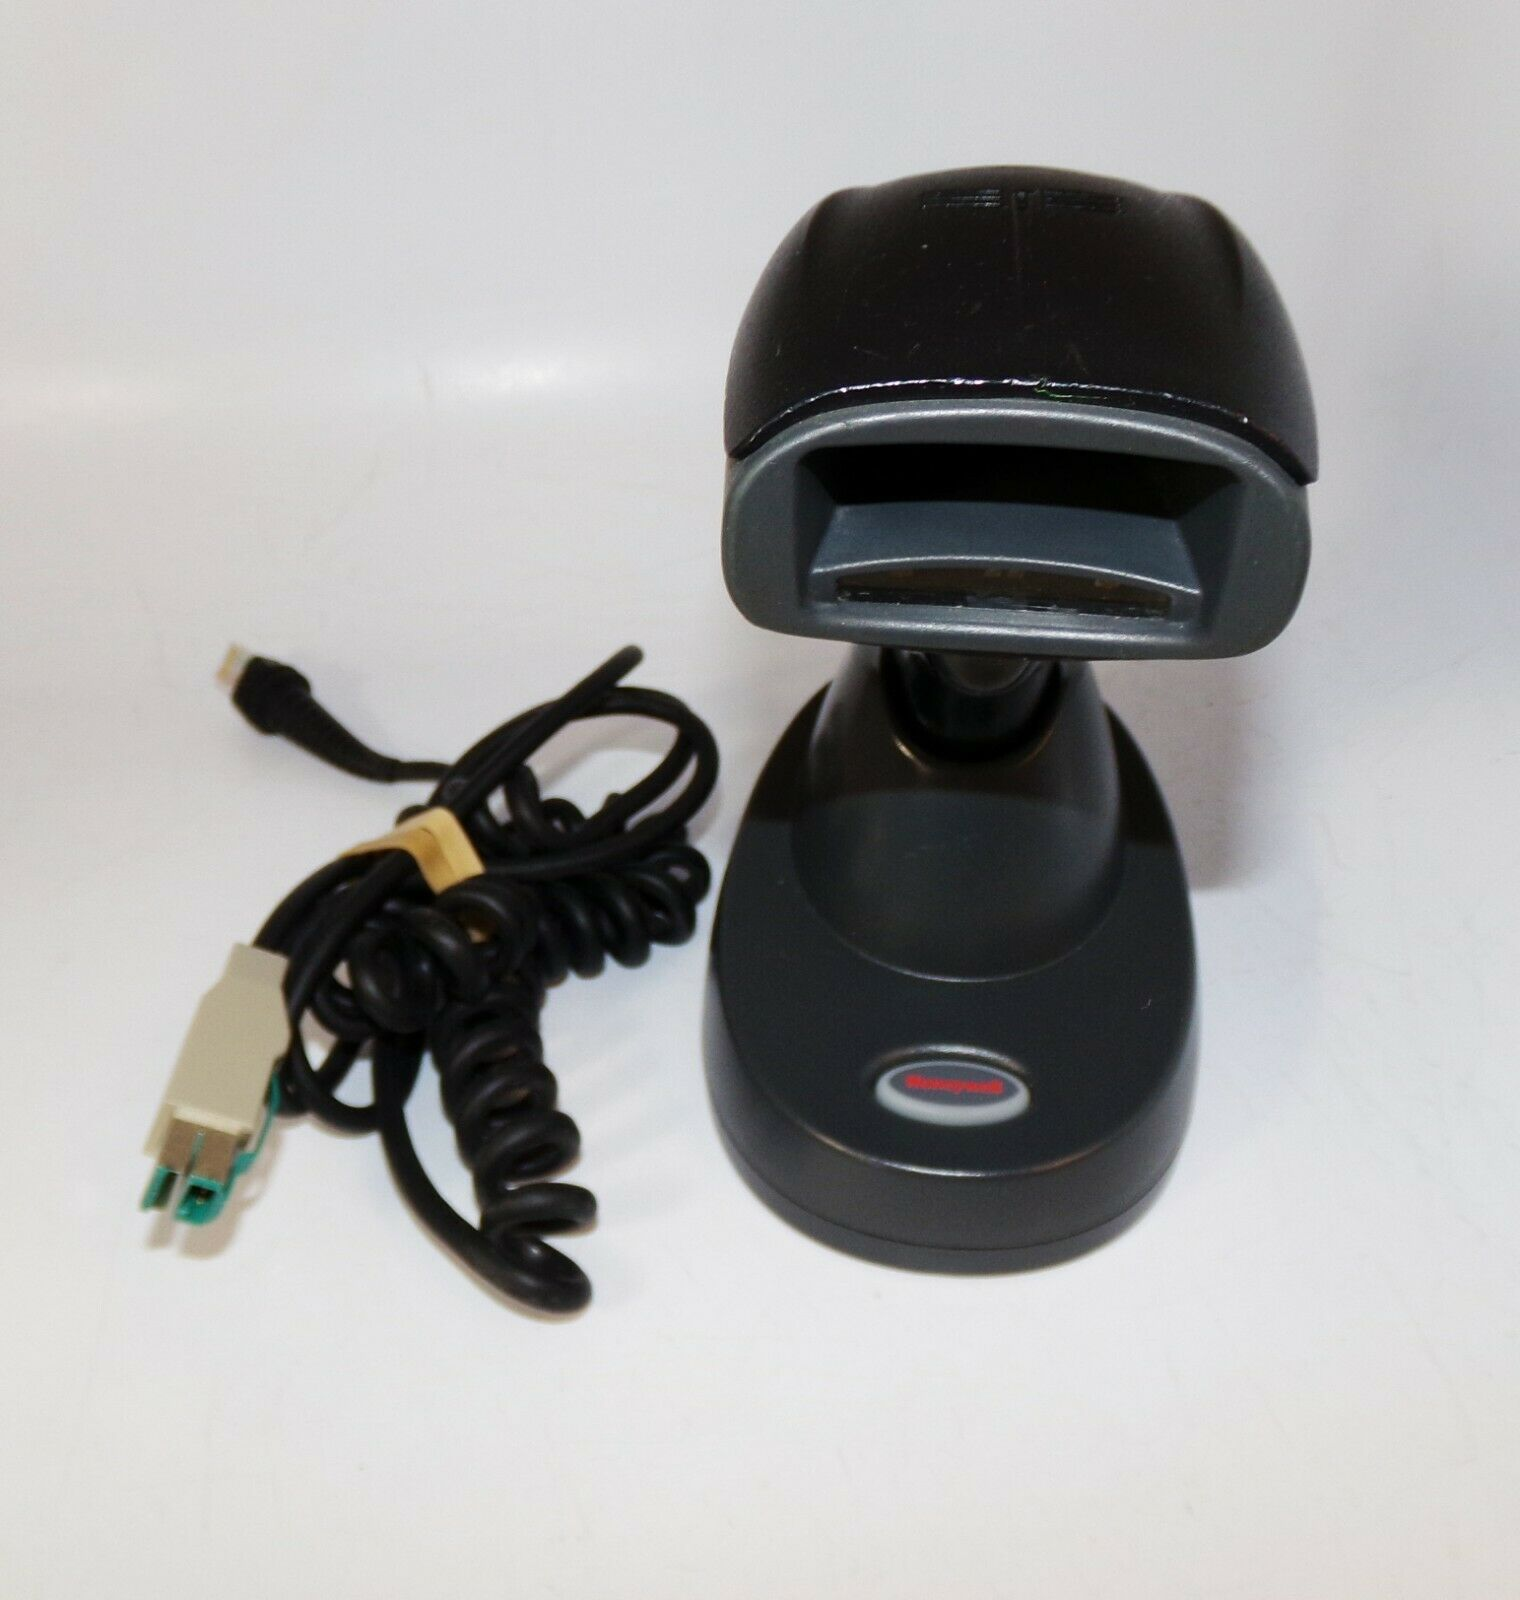 with USB Cables Honeywell Xenon 1900GSR-2-N Barcode Scanner Black